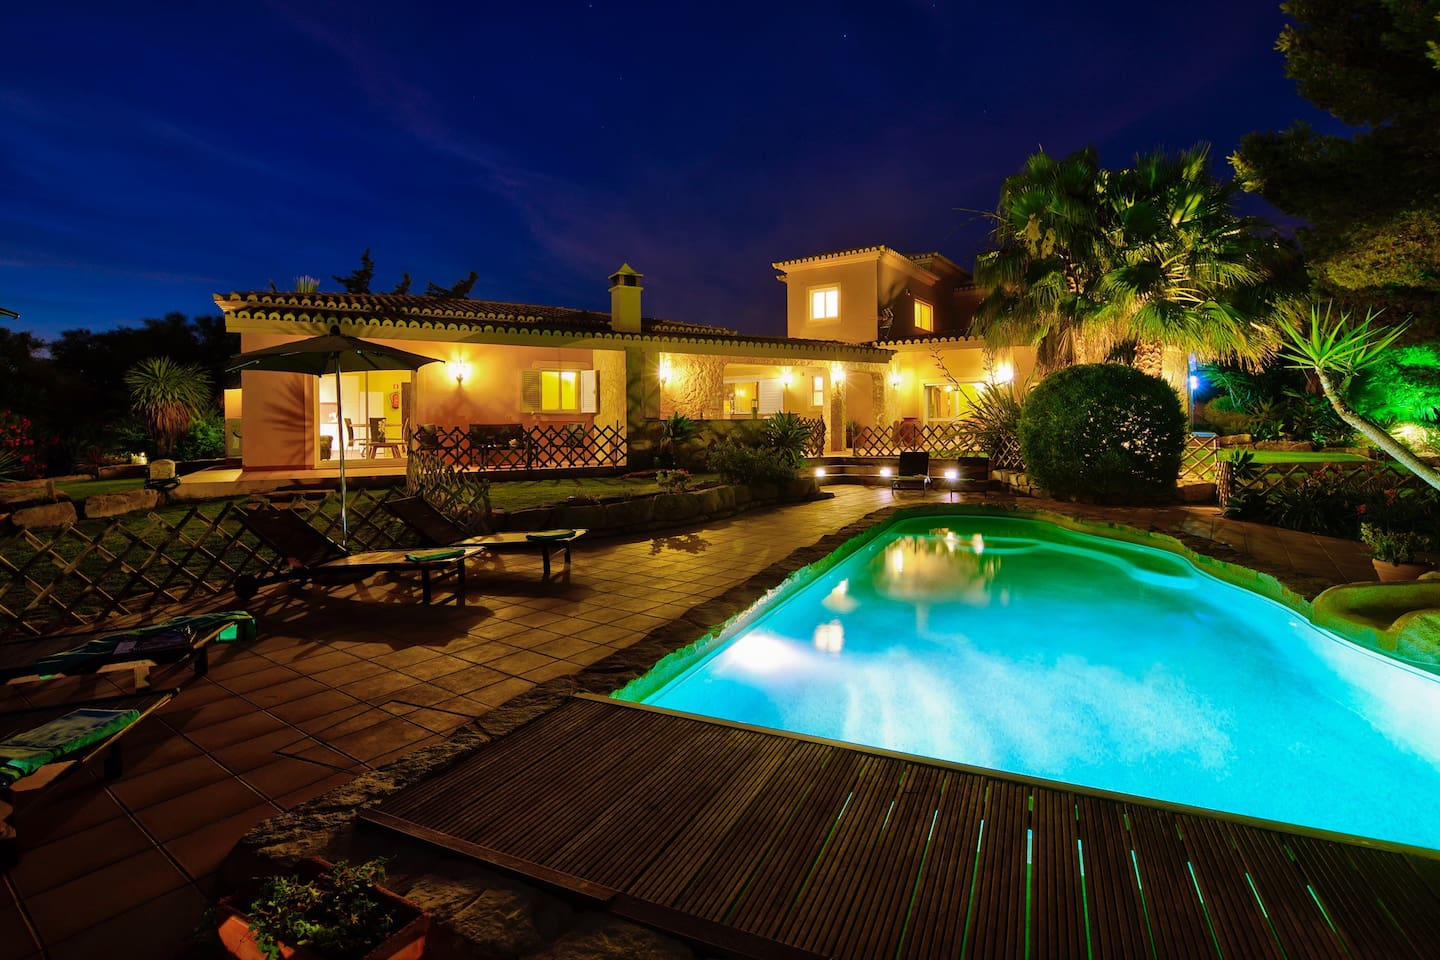 Stunning 6 bedroom villa (4 bedroom house and 2 bedroom self contained cottage)